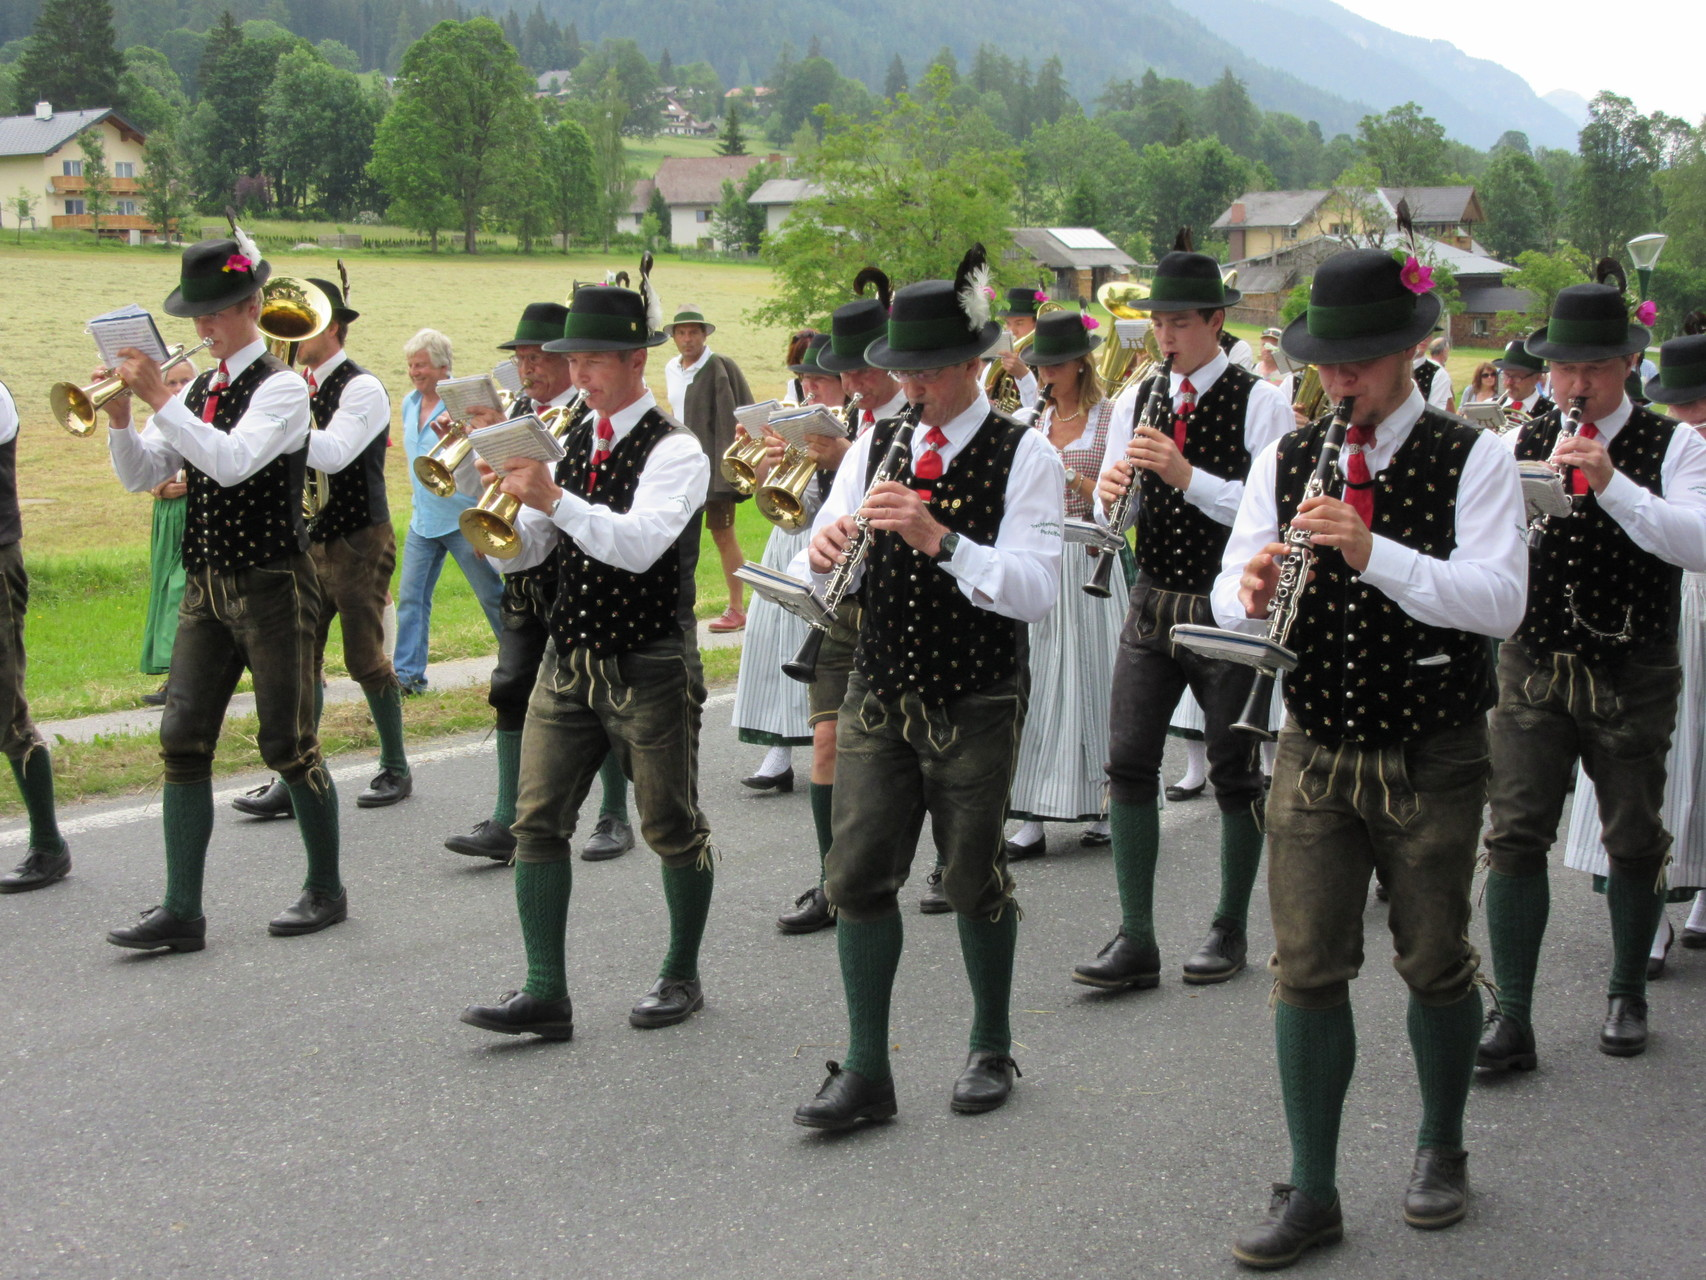 Marching band at the Fruhlingfest